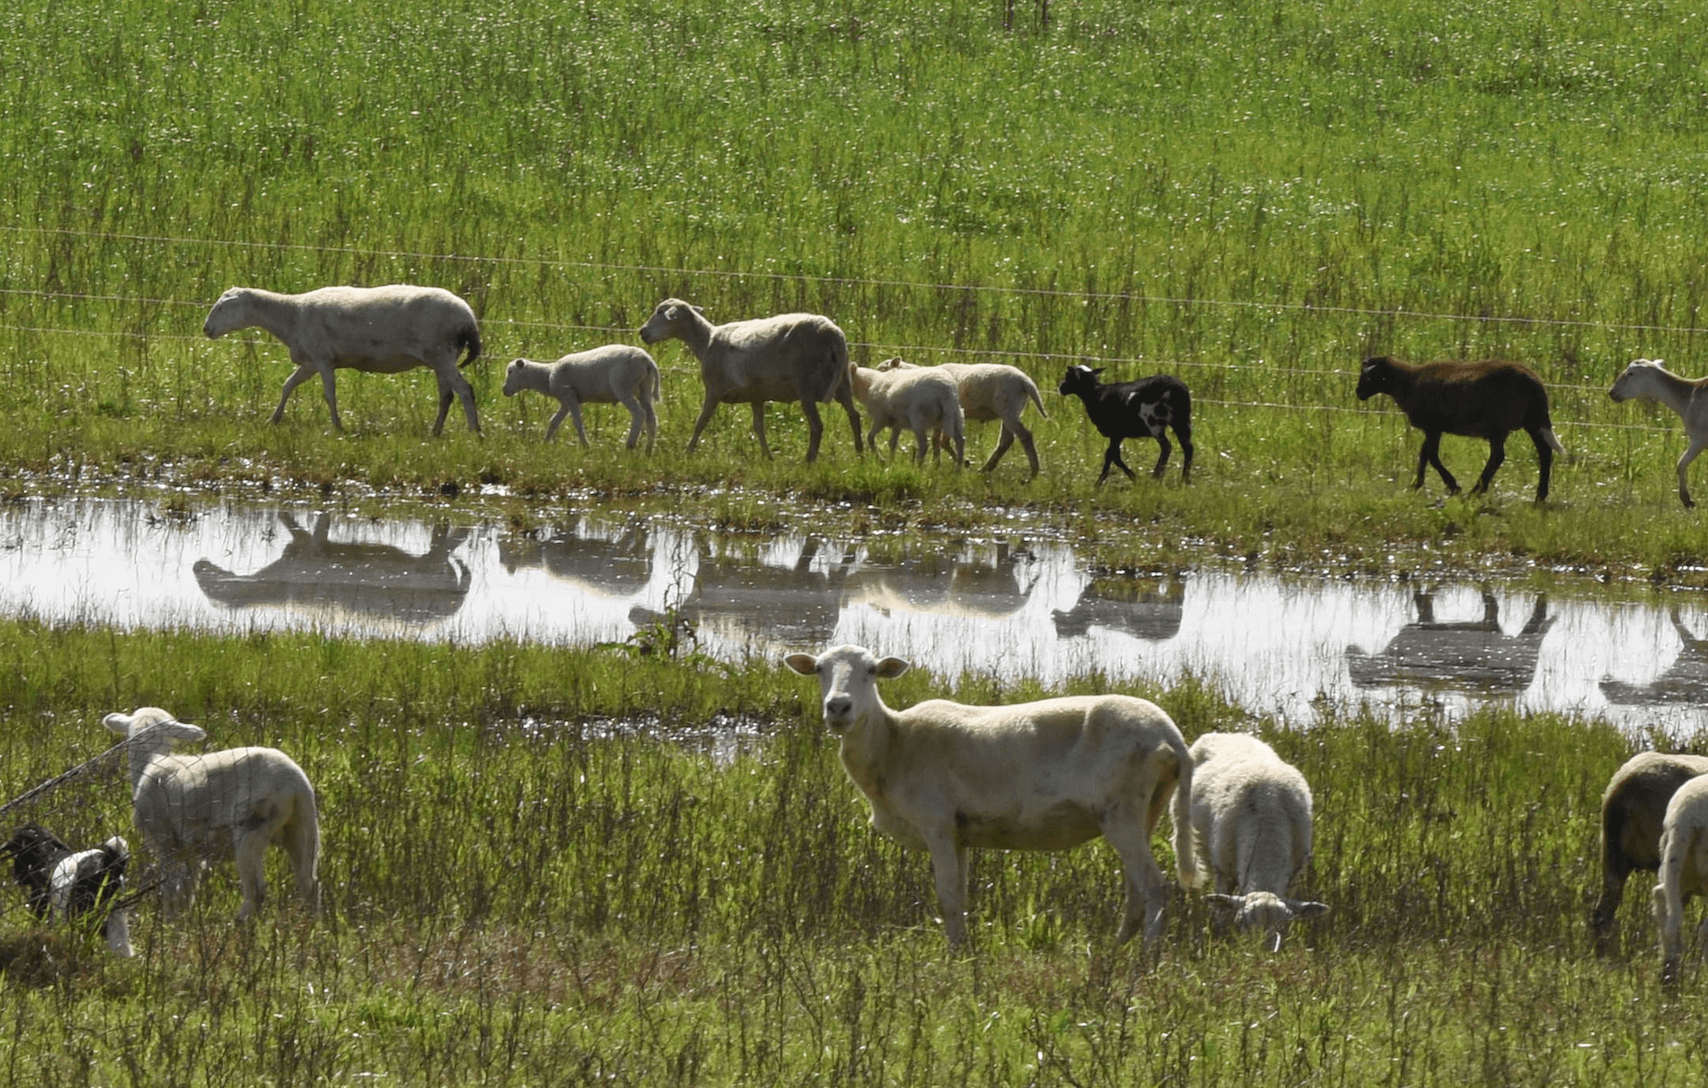 Grassfed sheep in pasture reflection